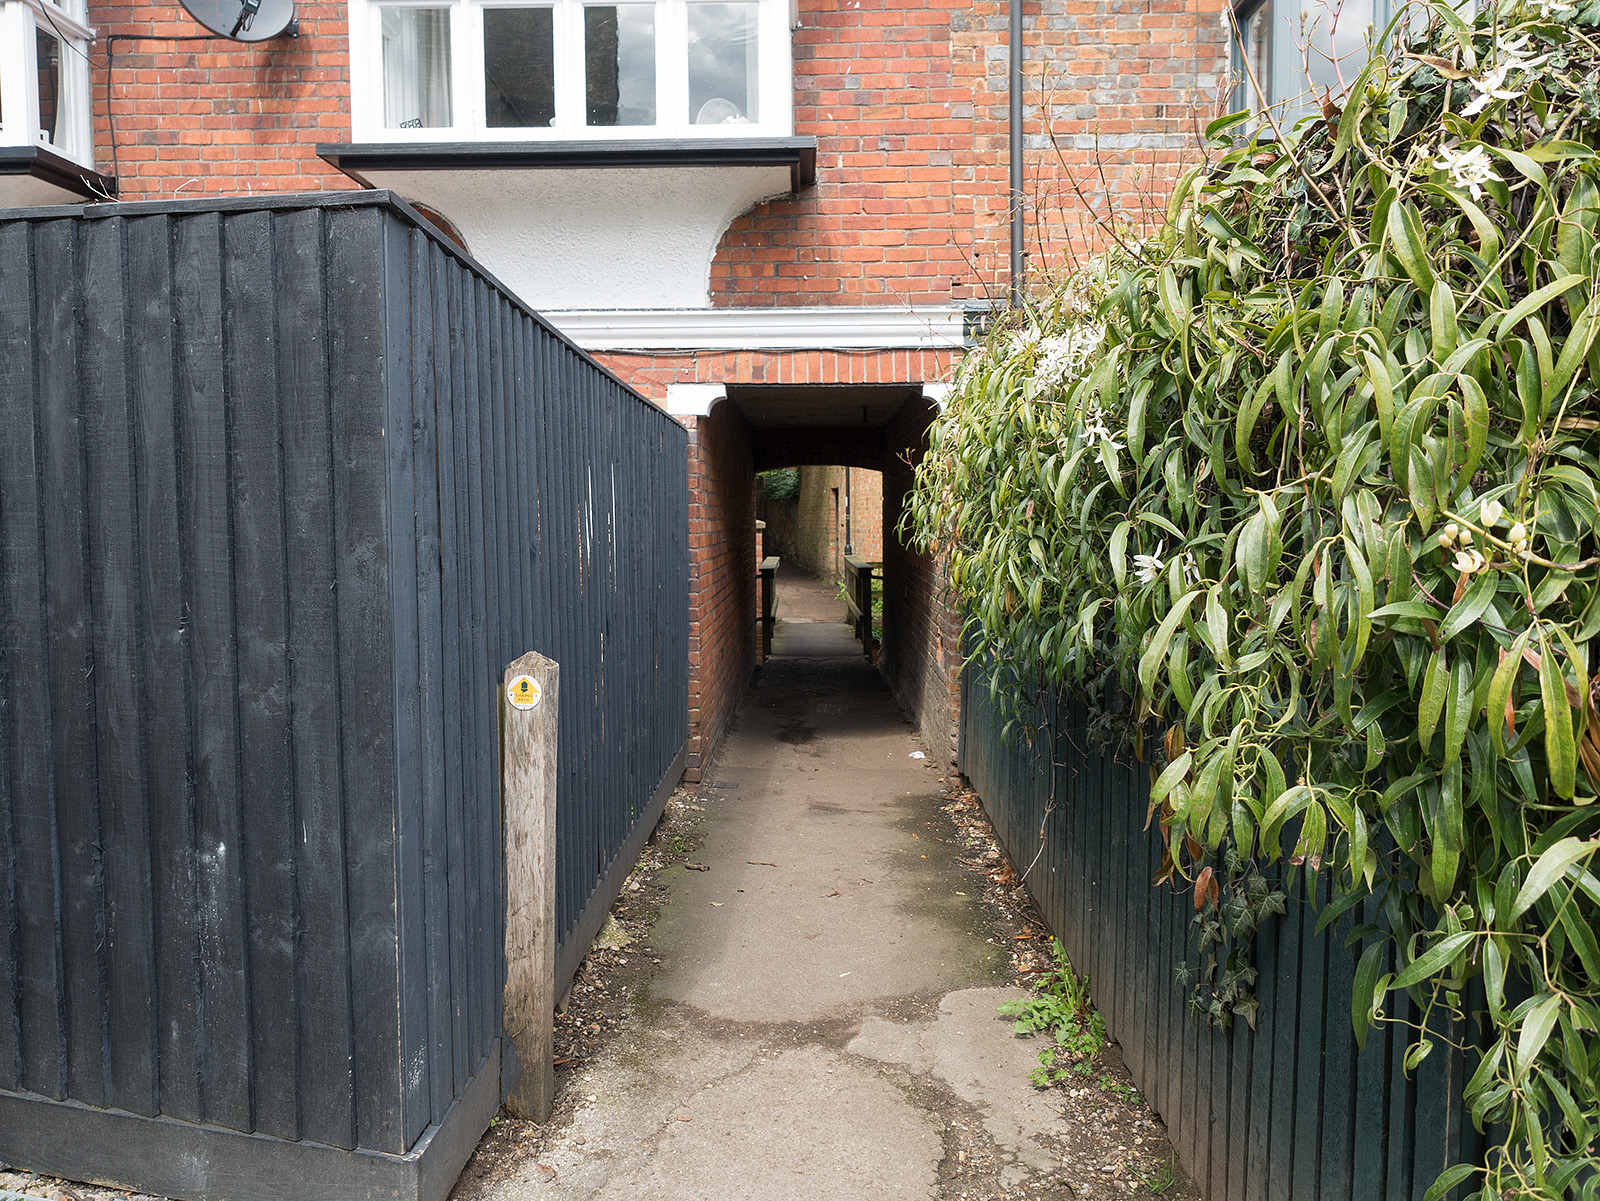 The path actually continues through a passageway between the houses - did not spot it last year - needed the guidebook!